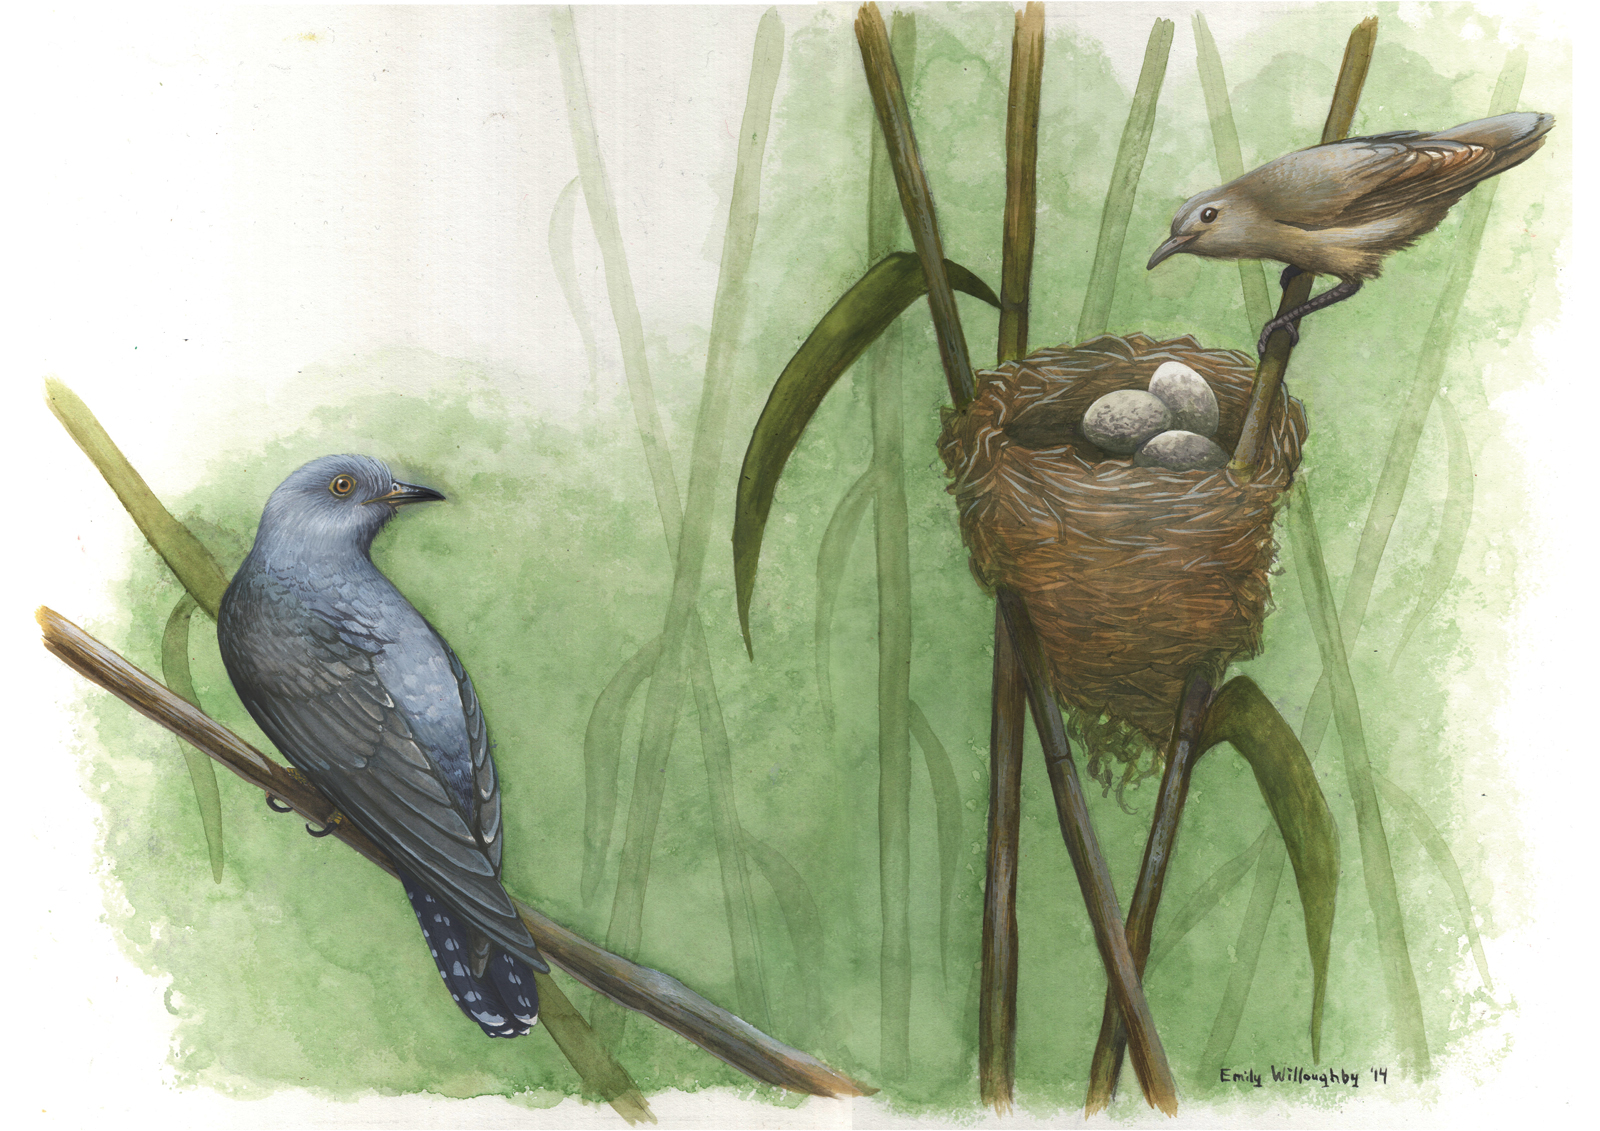 Cuckoo and Warbler Nest Parasitism 1 – Emily Willoughby Art